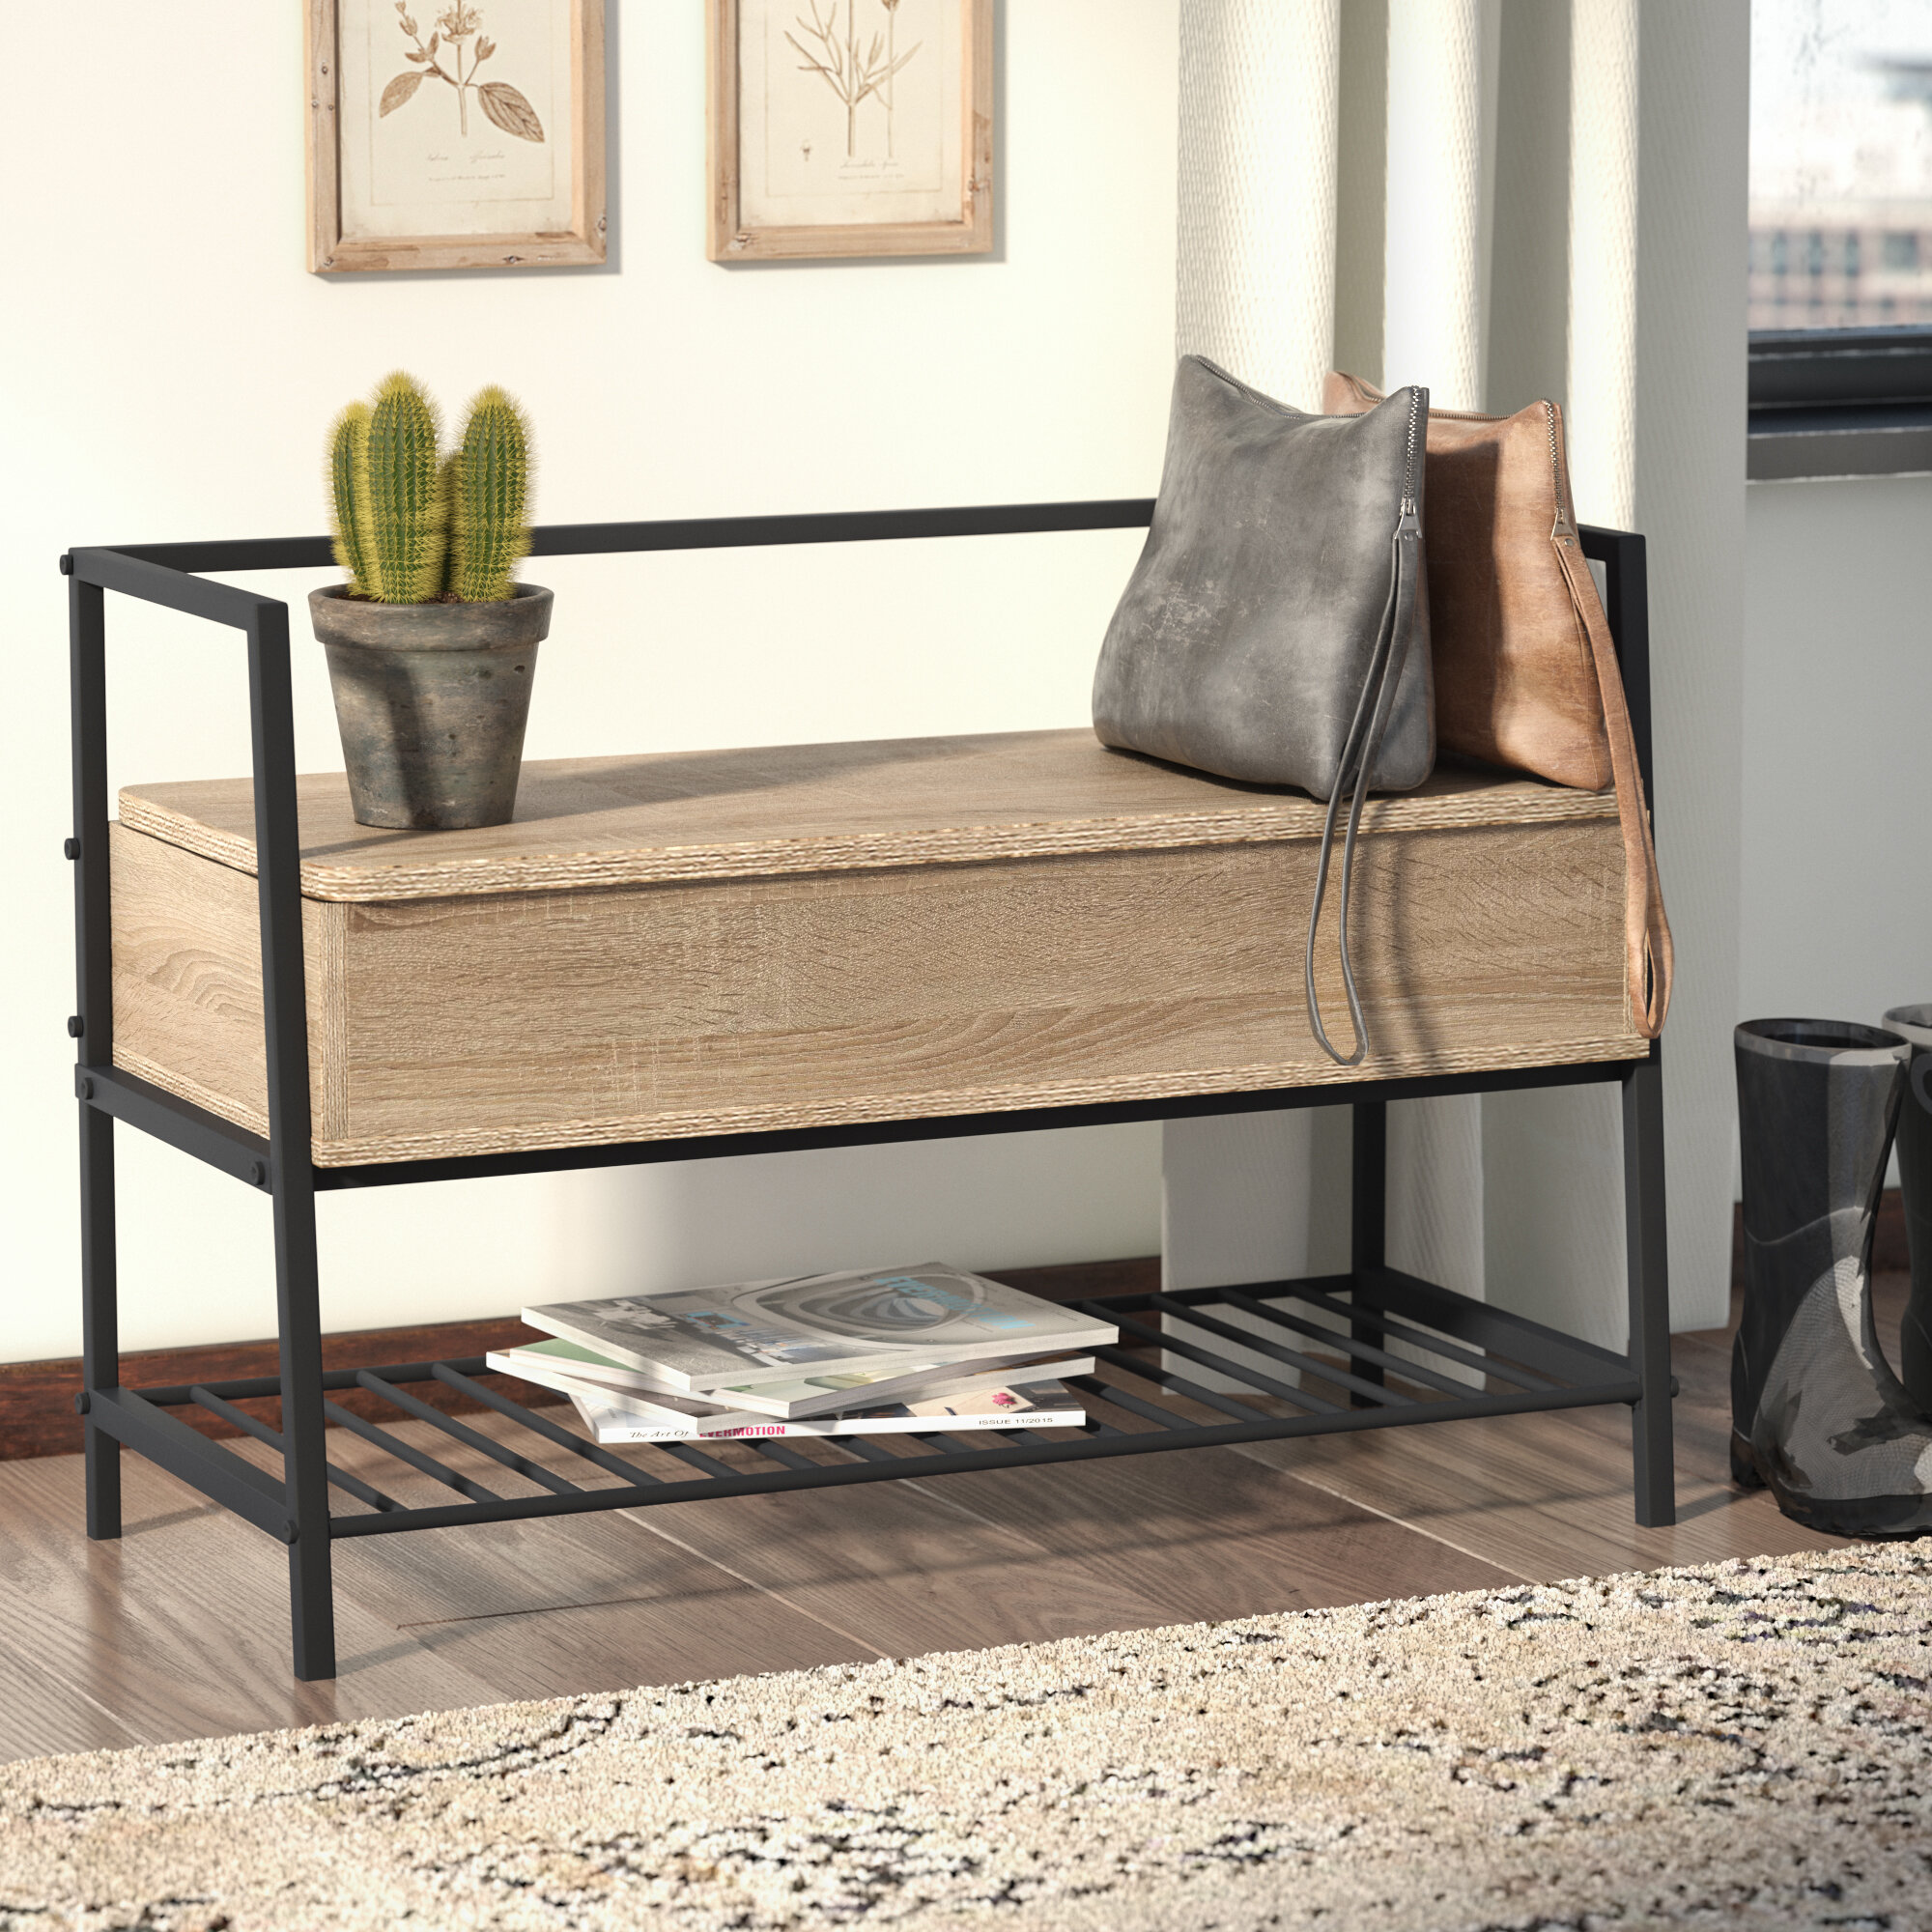 hall tree antique entryway simple classy and rack well entry design storage bench with racks ikea seat beatiful coat modern amusing